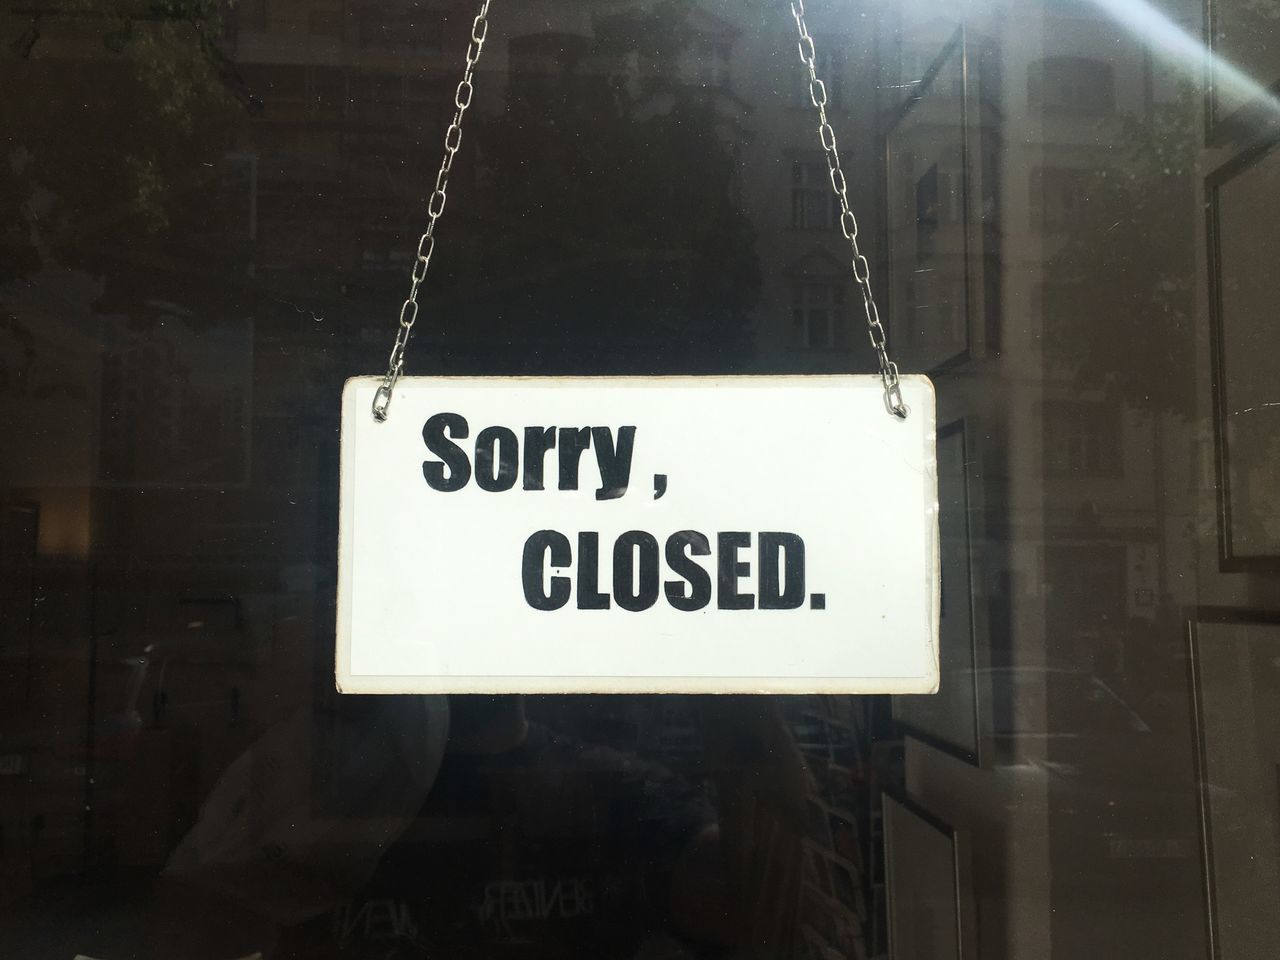 Sign Closed Shop Window Door Shop Window Shop Door Shop Sign Sorry Sorry We're Closed Sorry Closed Typography Typo Information Information Sign Closed Door Closed Shop Negative Space Copy Space Closing Time Plate Signpost Signboard Fine Art Photography The Shop Around The Corner